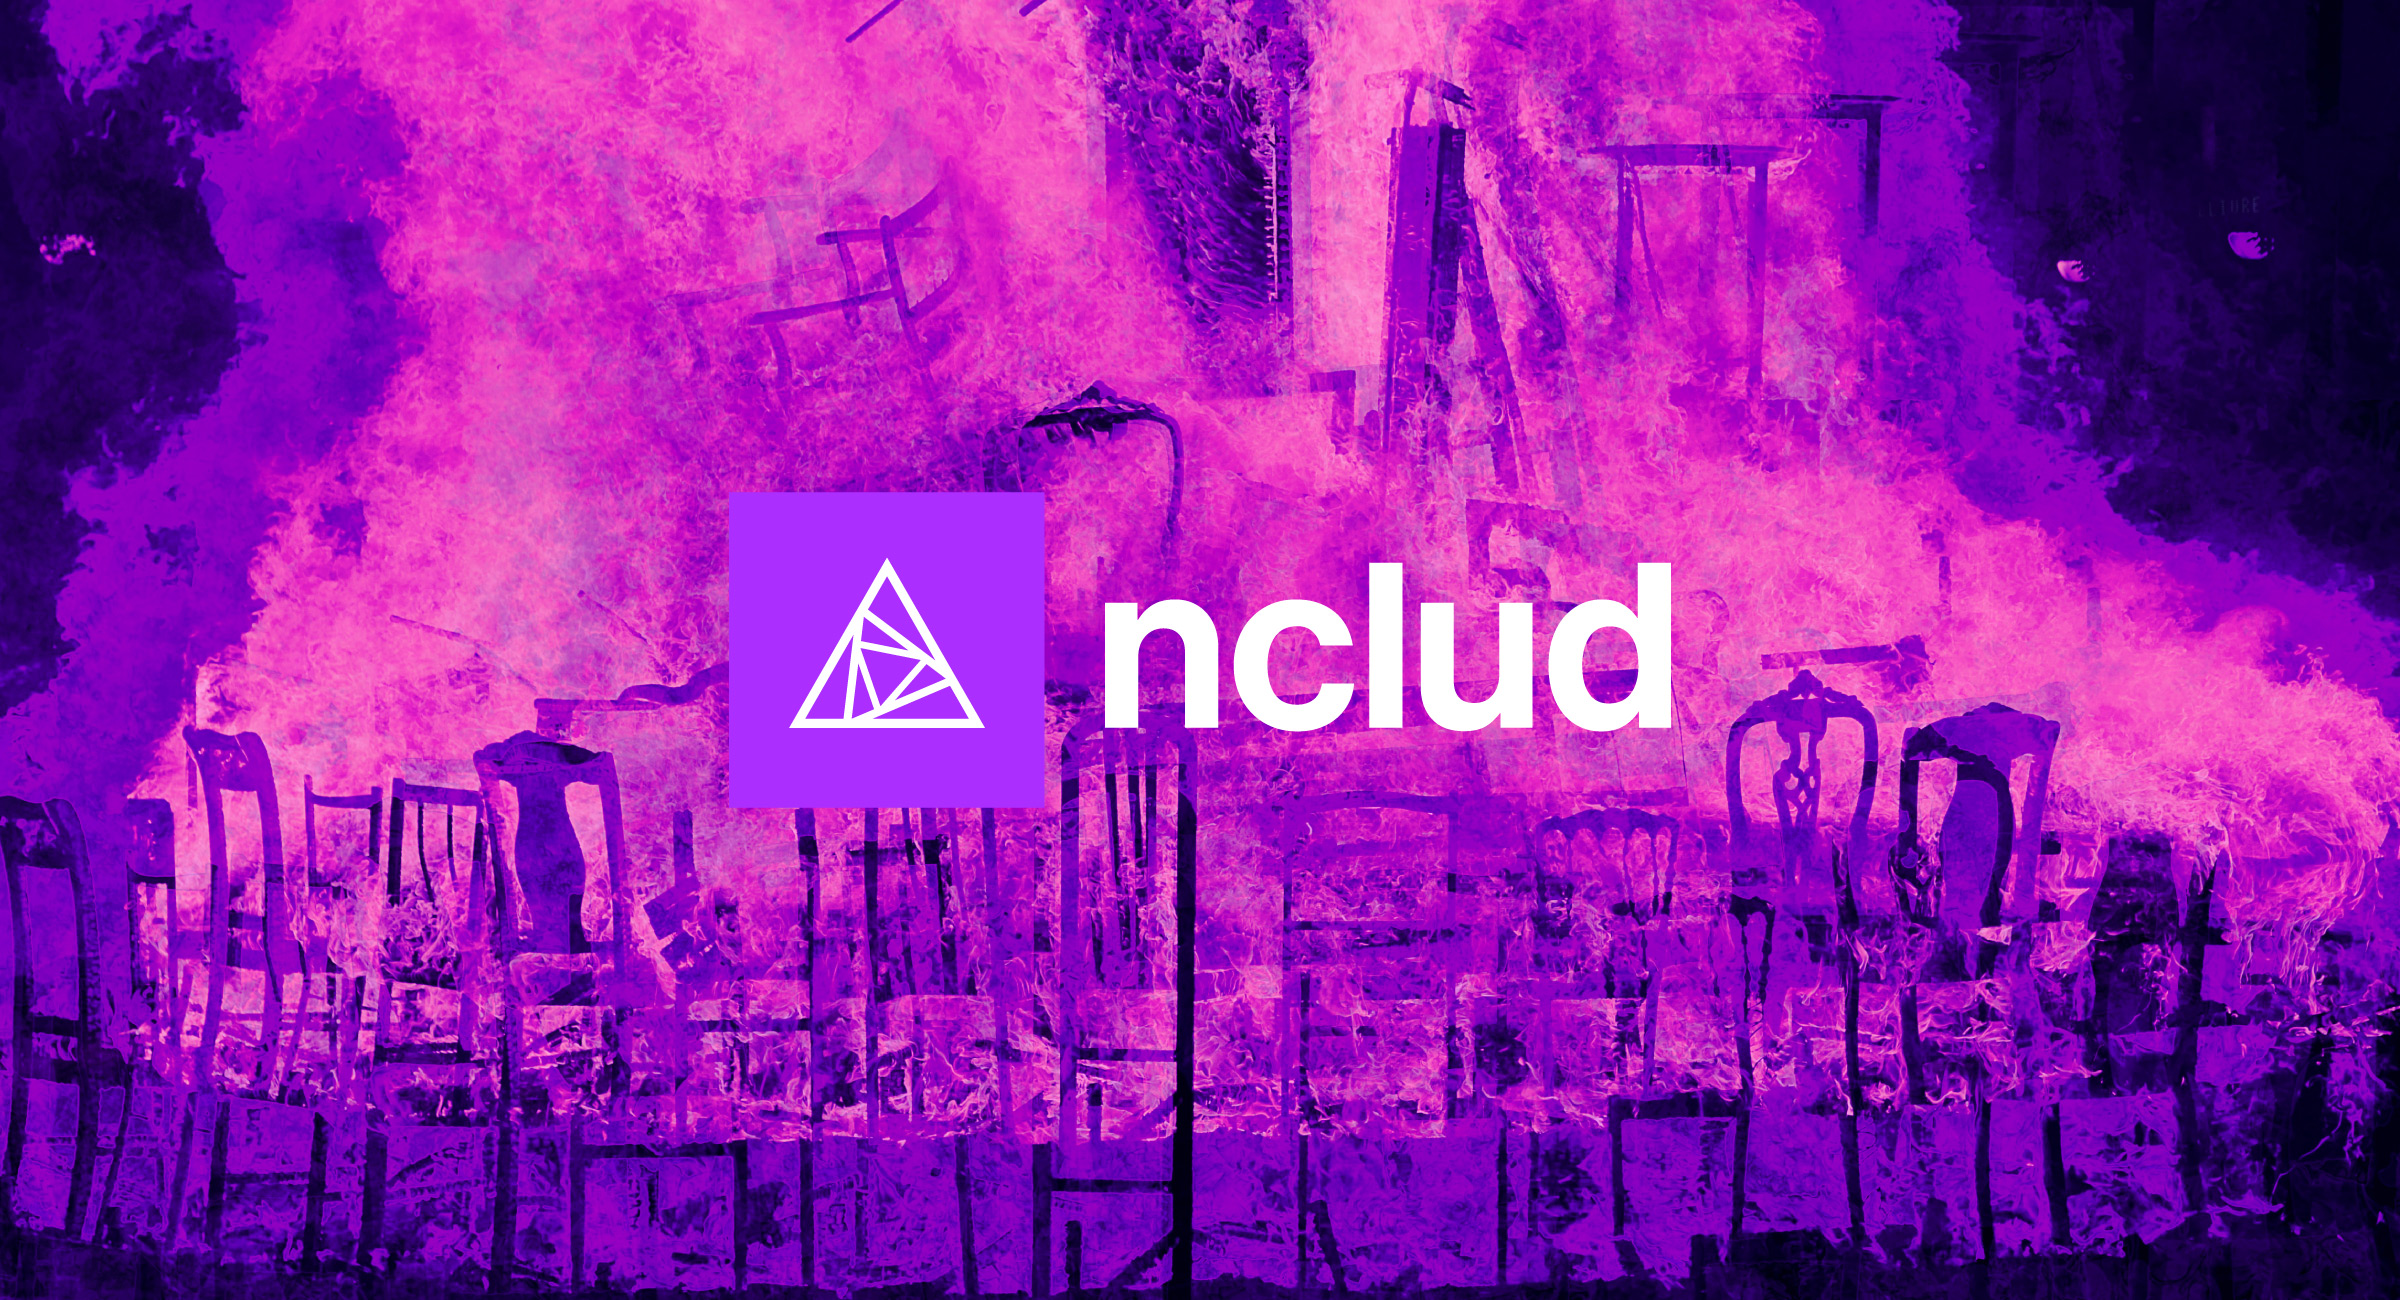 nclud Rebrand: A Provocative Creative Agency